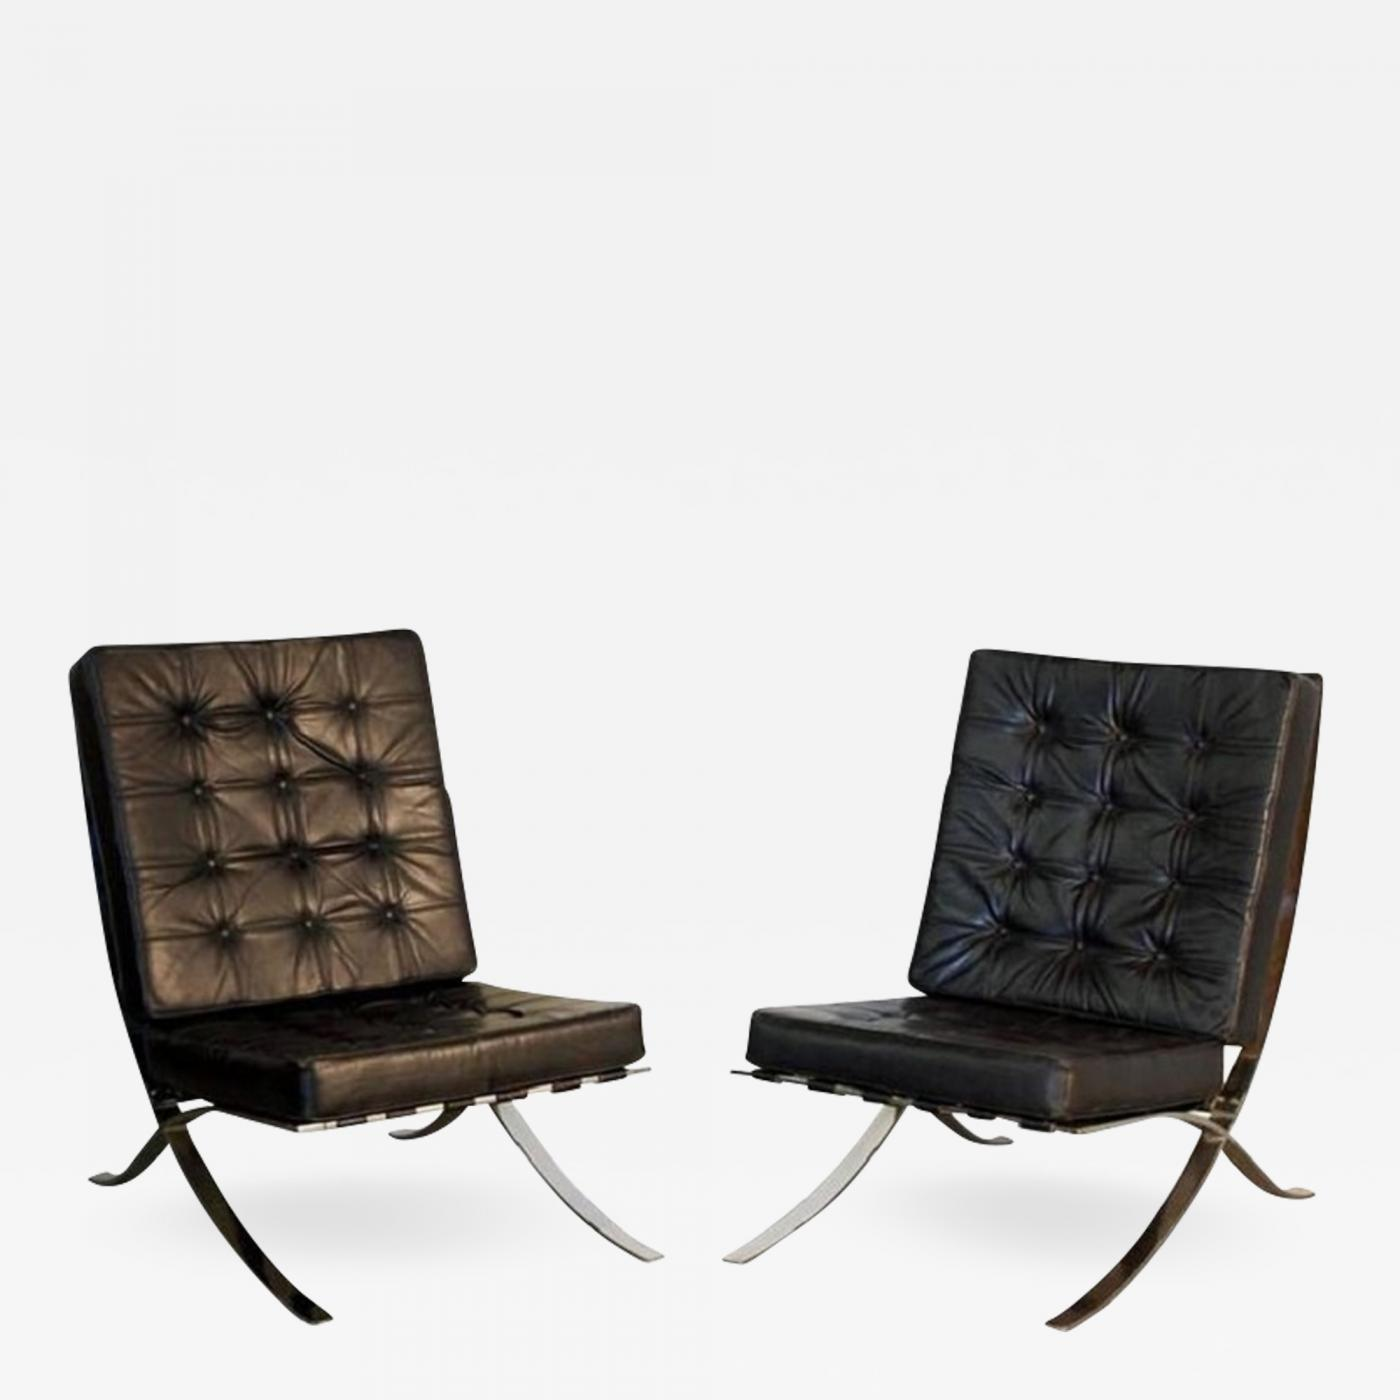 Wondrous Pair Of Oversized French 1970S Barcelona Style Chrome And Leather Chairs Squirreltailoven Fun Painted Chair Ideas Images Squirreltailovenorg